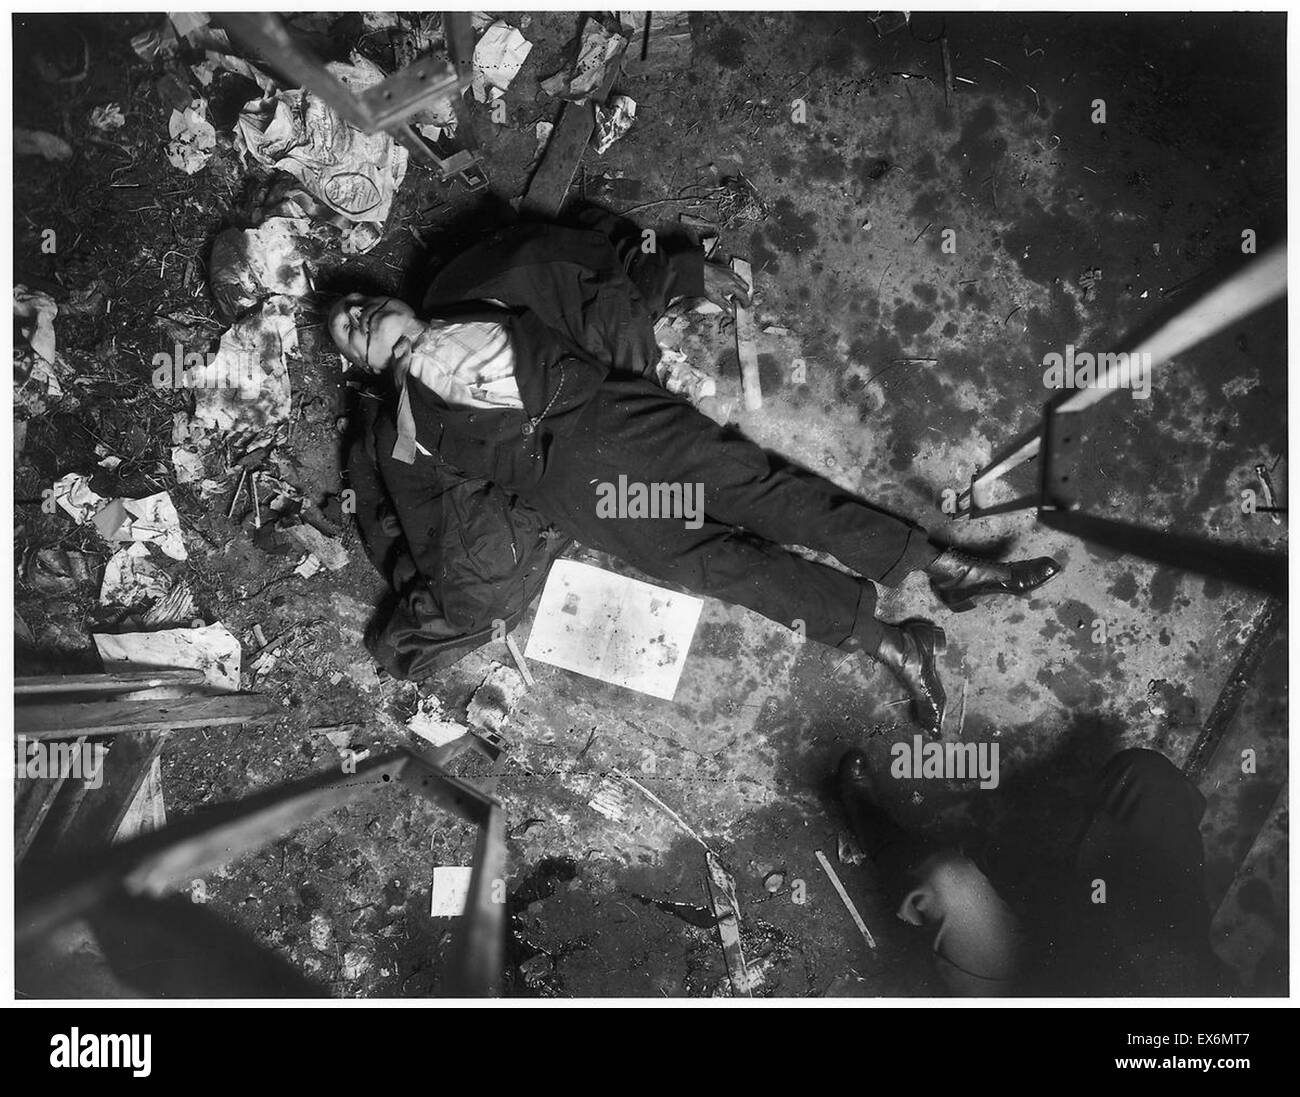 Ted Evans Photography: Photograph Of Murder Scene In New York City. Dated 1916